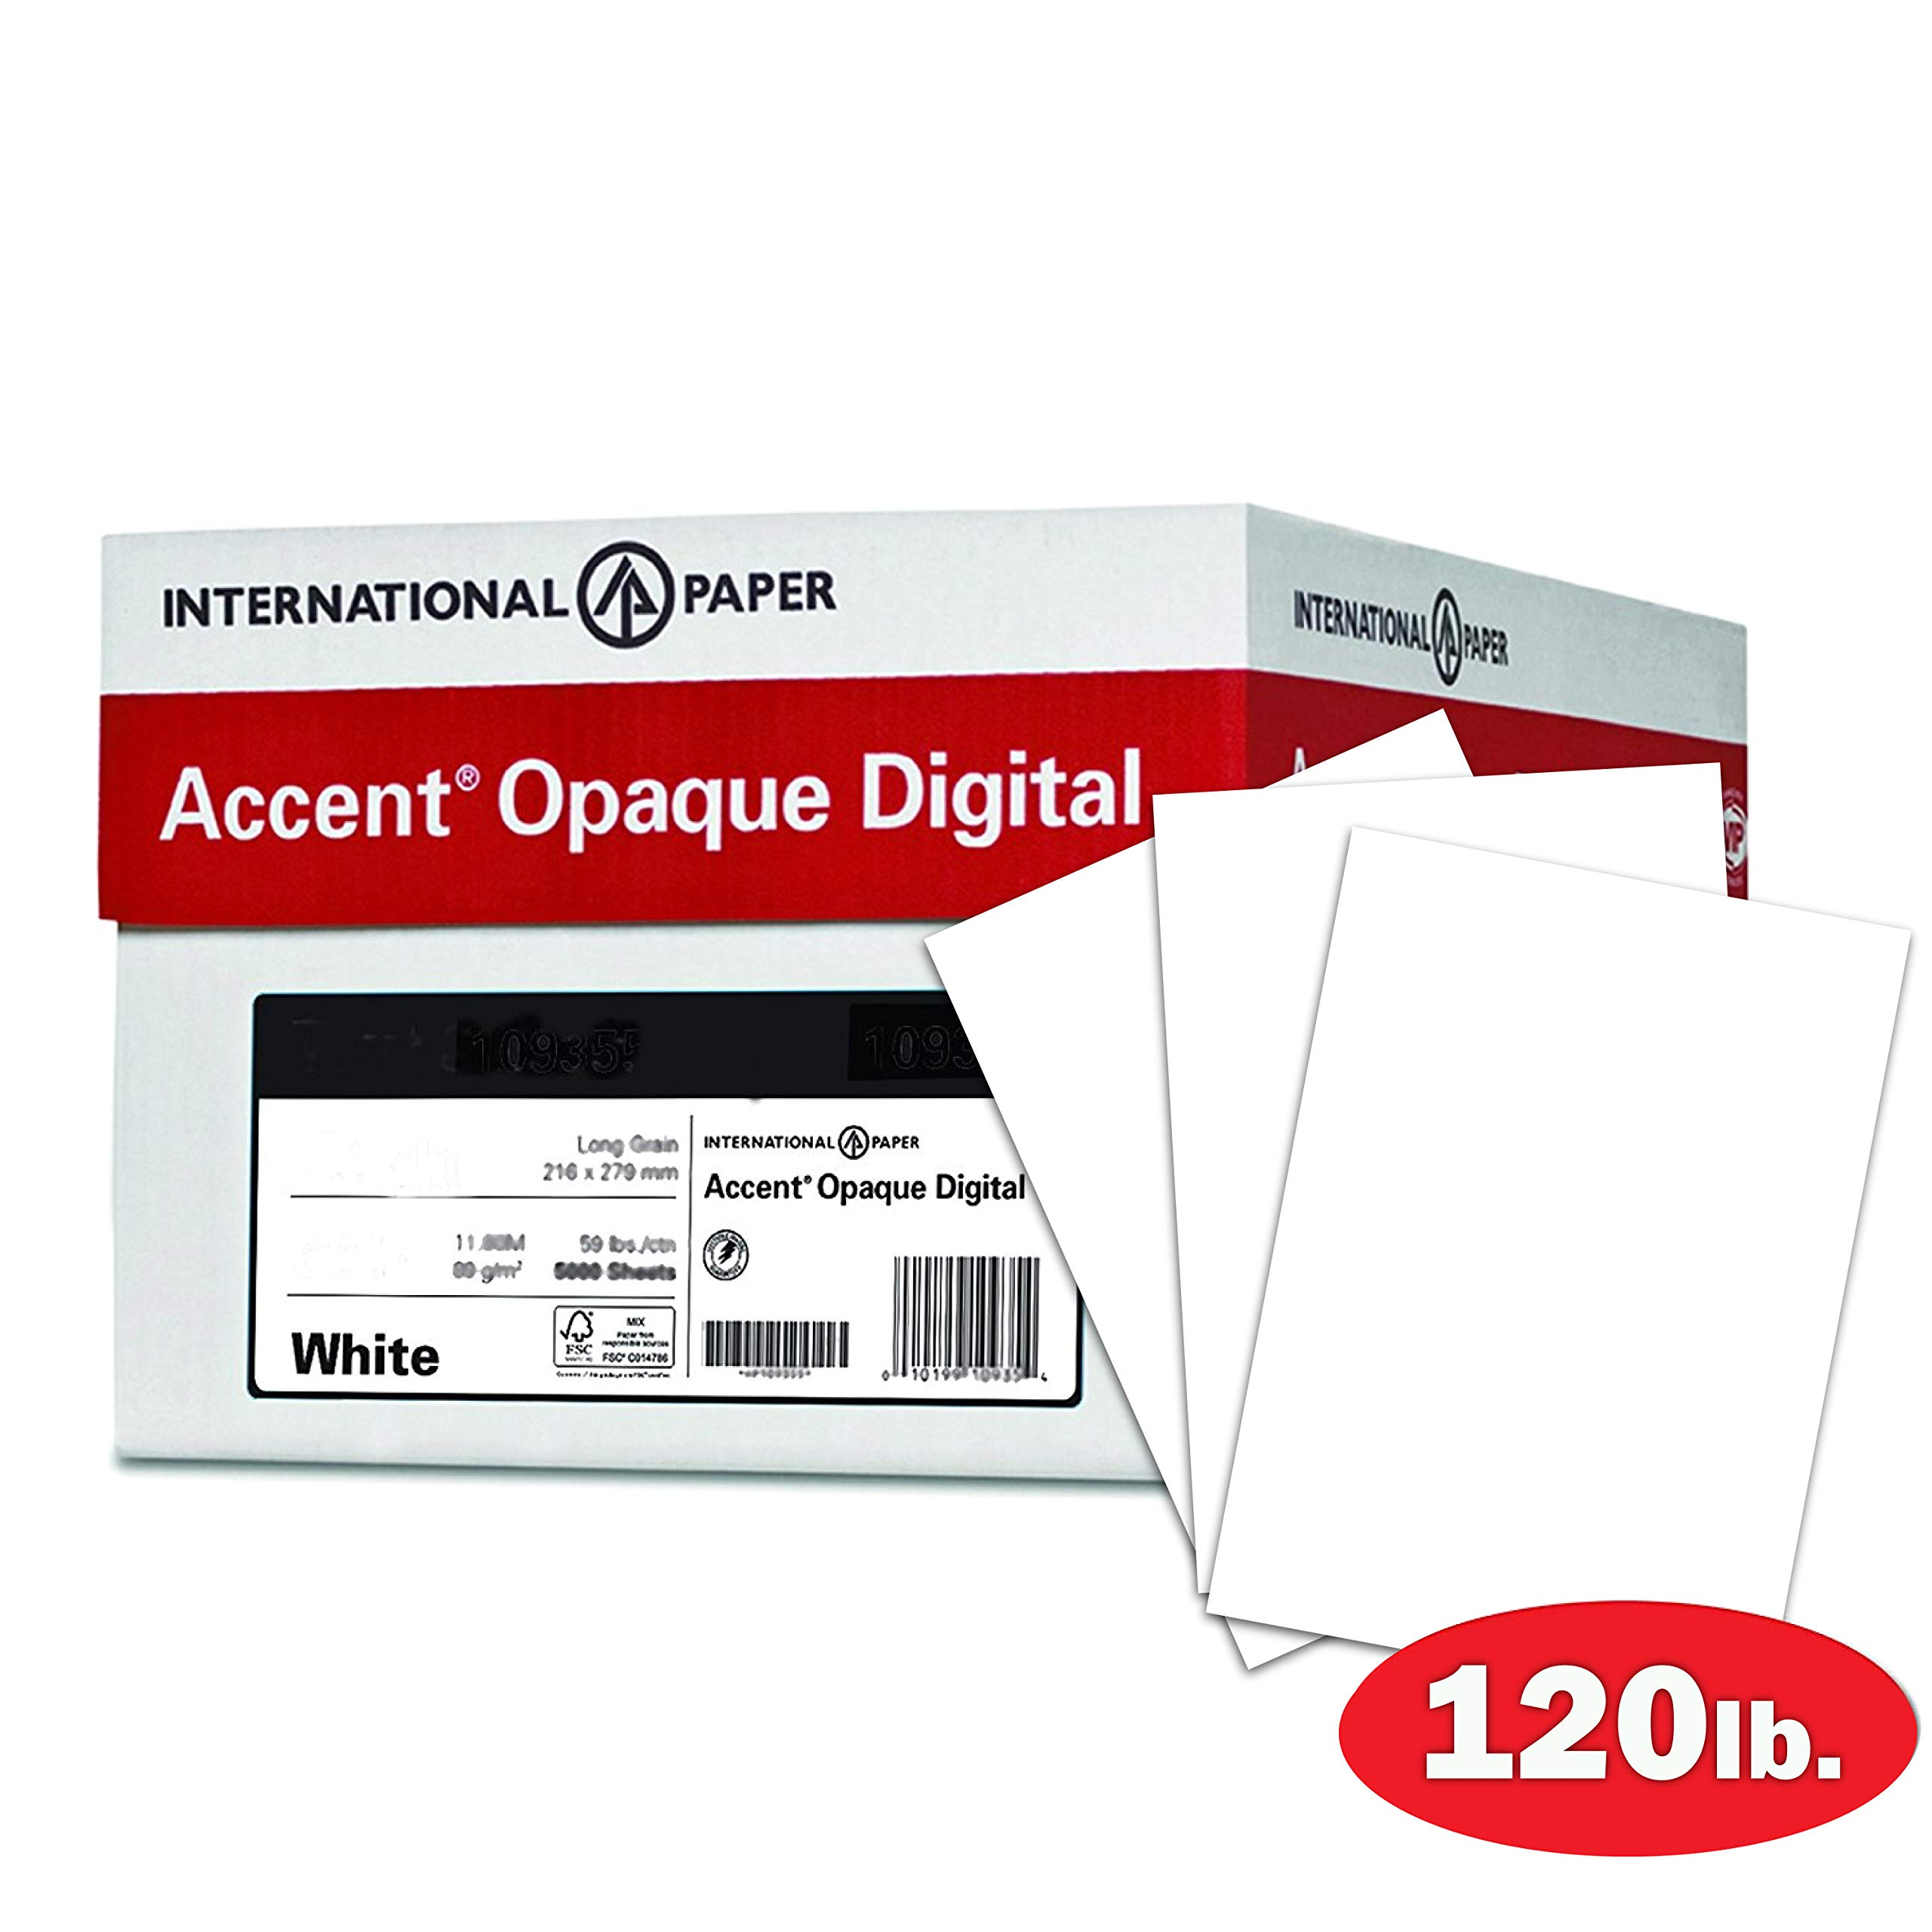 Accent Opaque Thick Cardstock Paper, White Paper, 120lb Cover, 325 gsm, 18x12 Paper, 97 Bright, 4 Ream Case / 600 Sheets, Smooth, Heavy Card Stock (189030C)